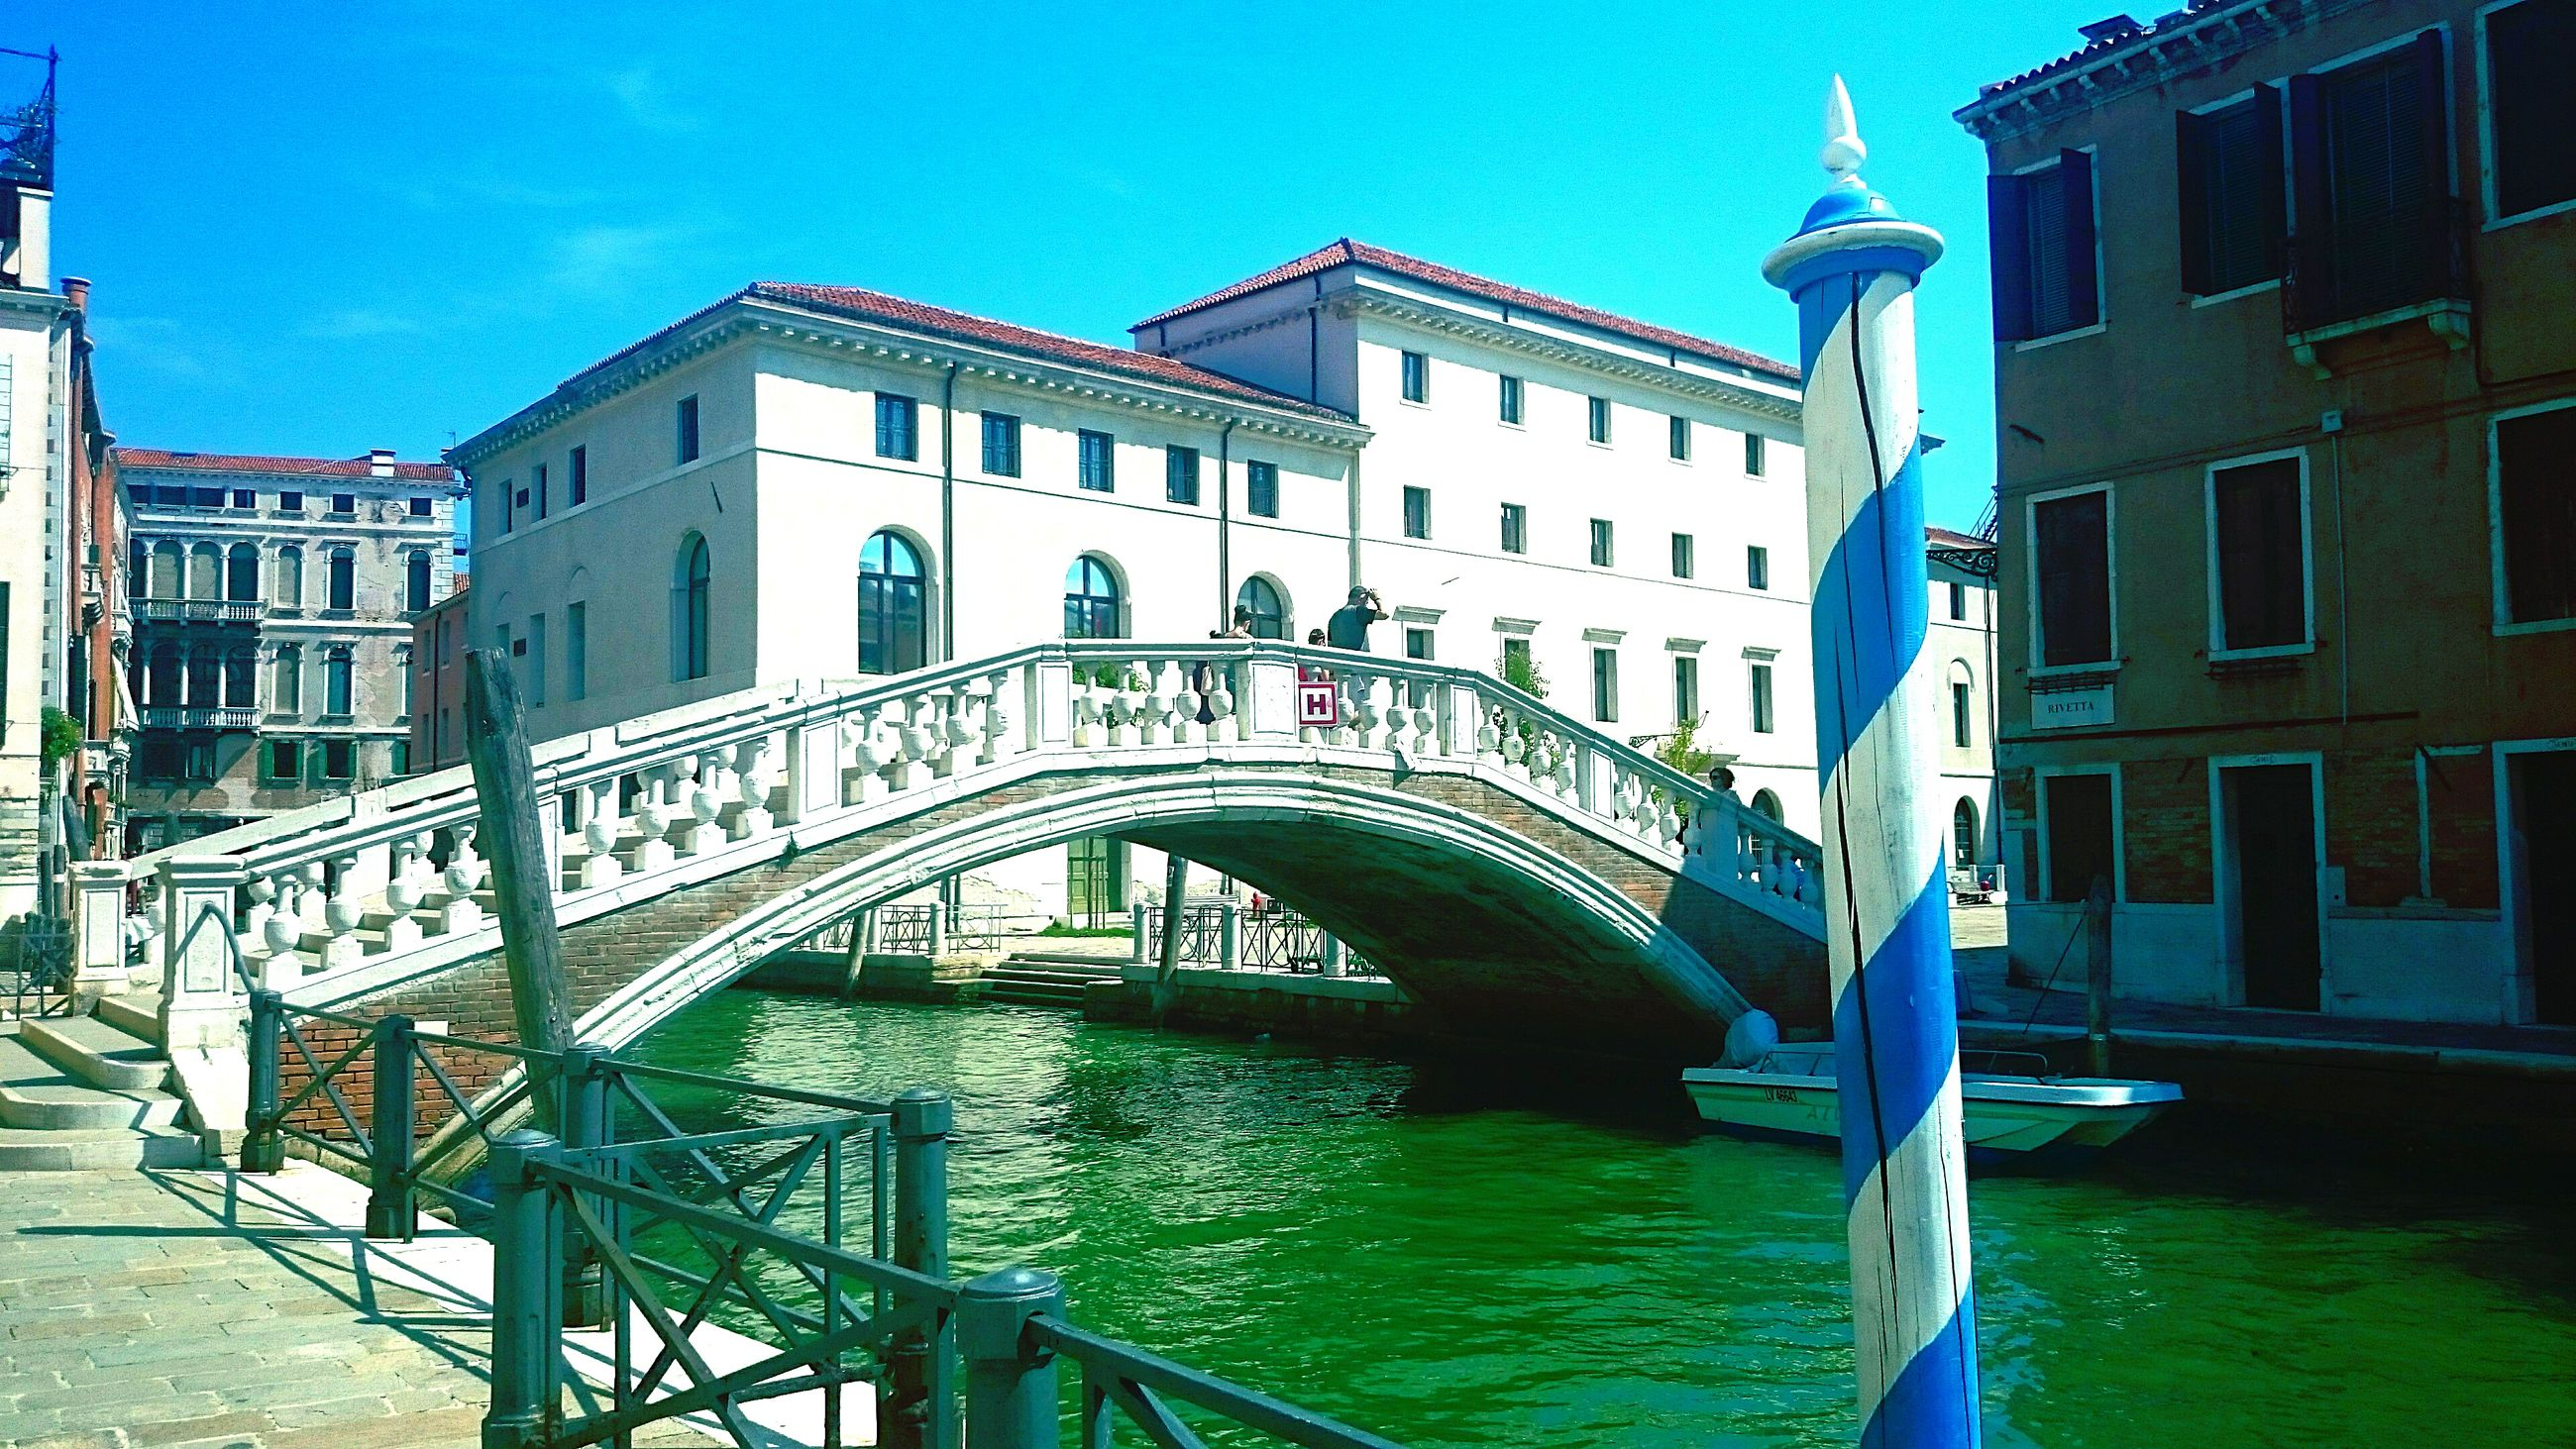 architecture, built structure, building exterior, railing, bridge - man made structure, water, connection, arch, canal, sky, blue, city, sunlight, clear sky, low angle view, building, day, arch bridge, river, bridge